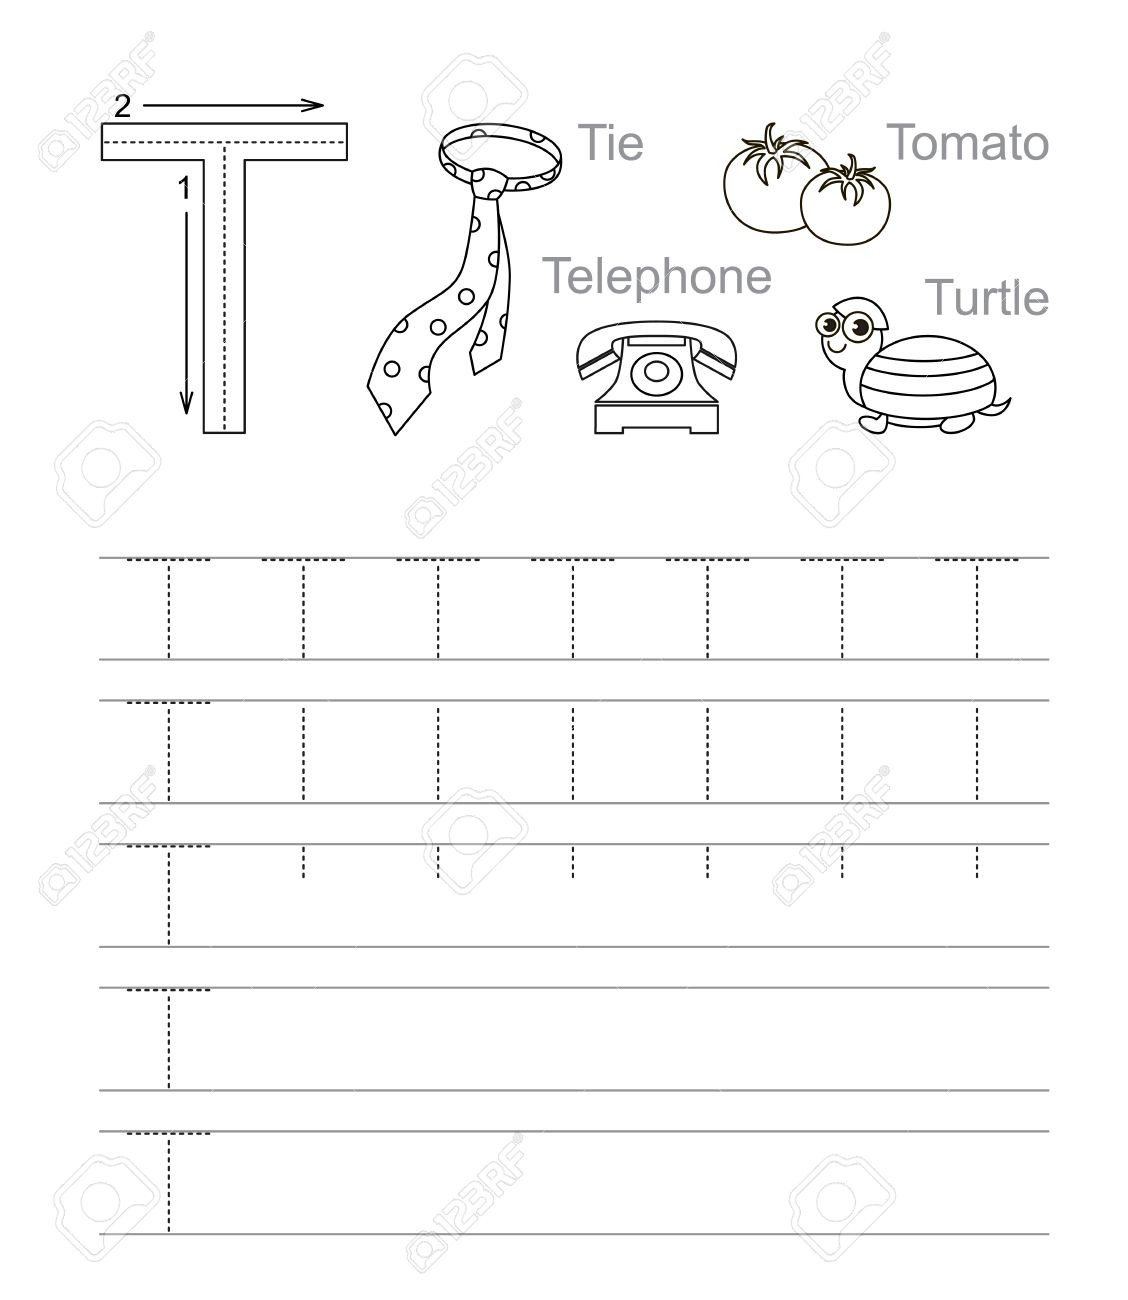 photo stock vector vector exercise illustrated alphabet learn handwriting tracing worksheet for letter t page to be col